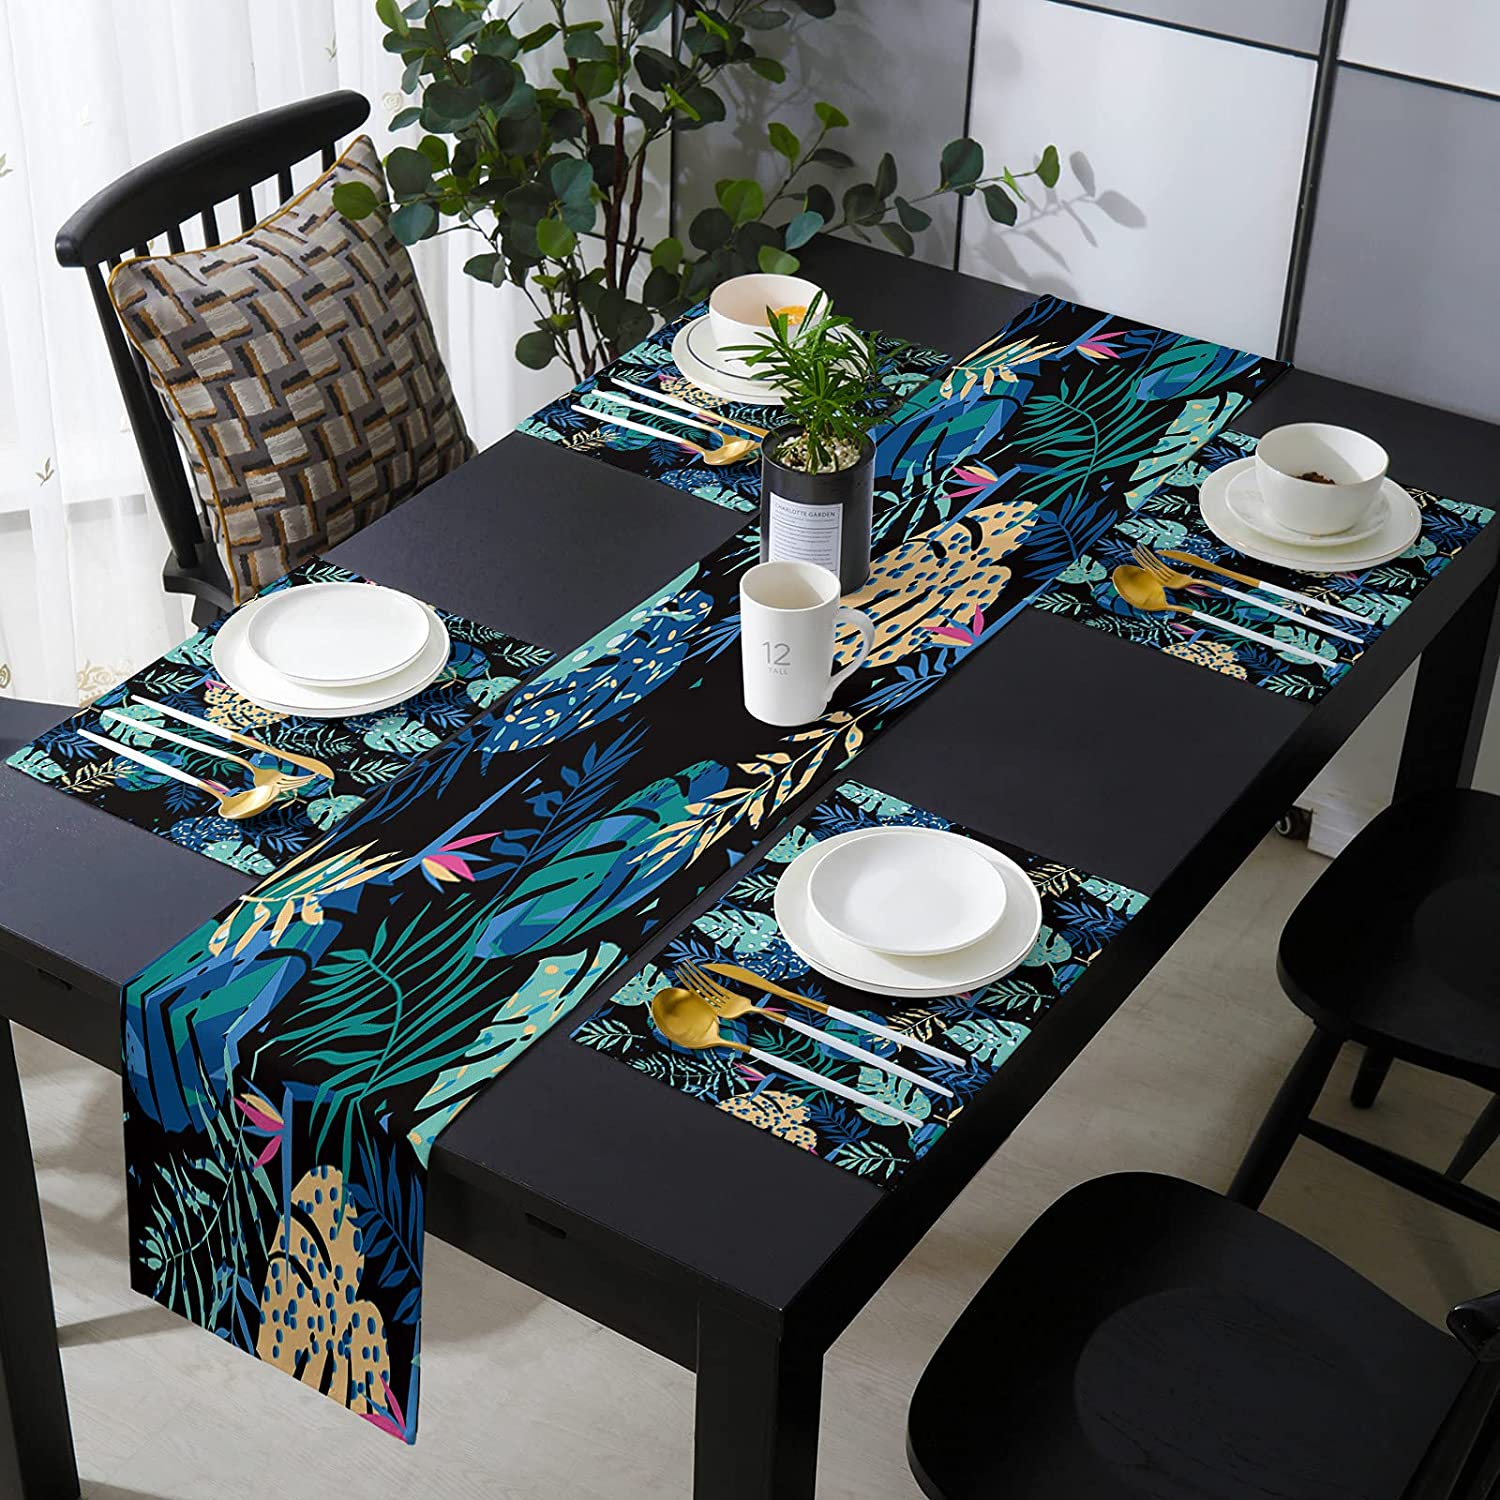 KAROLA Table Safety and half trust Runner Placemats Set Tropical Plant 6 of Leaves